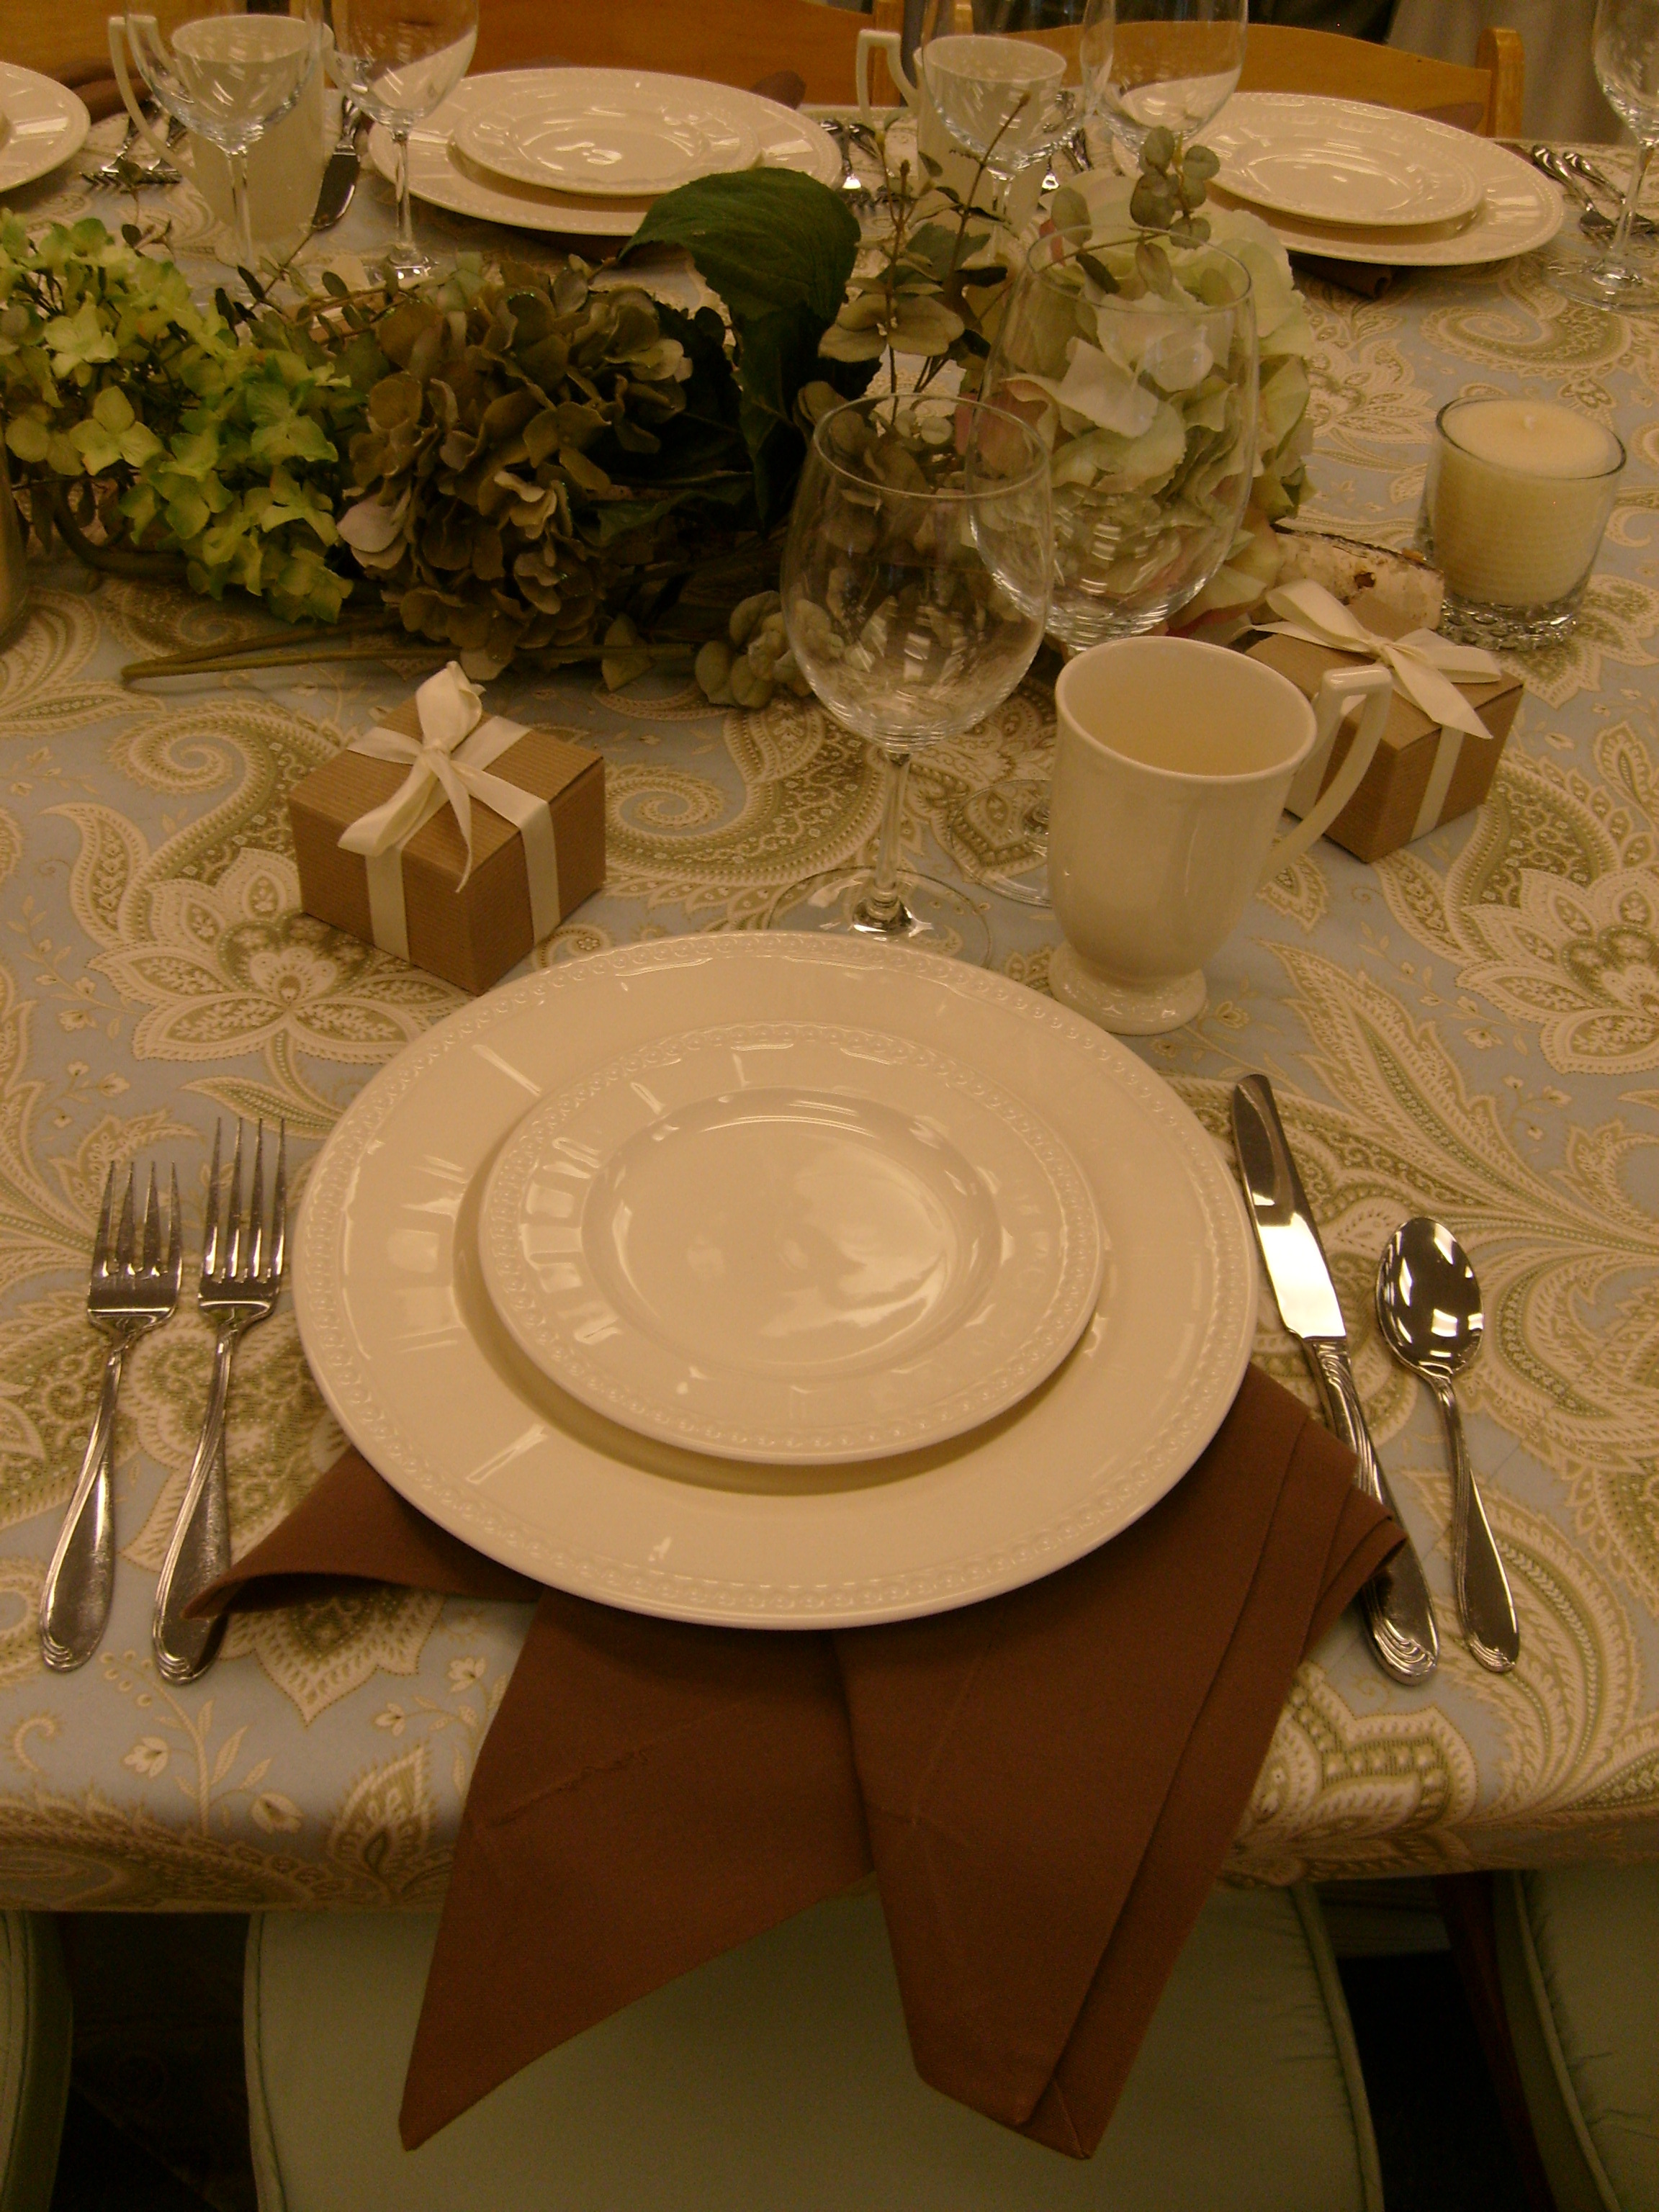 Registry, ivory, Place Settings, Drinkware, Crystal, Glasses, Plates